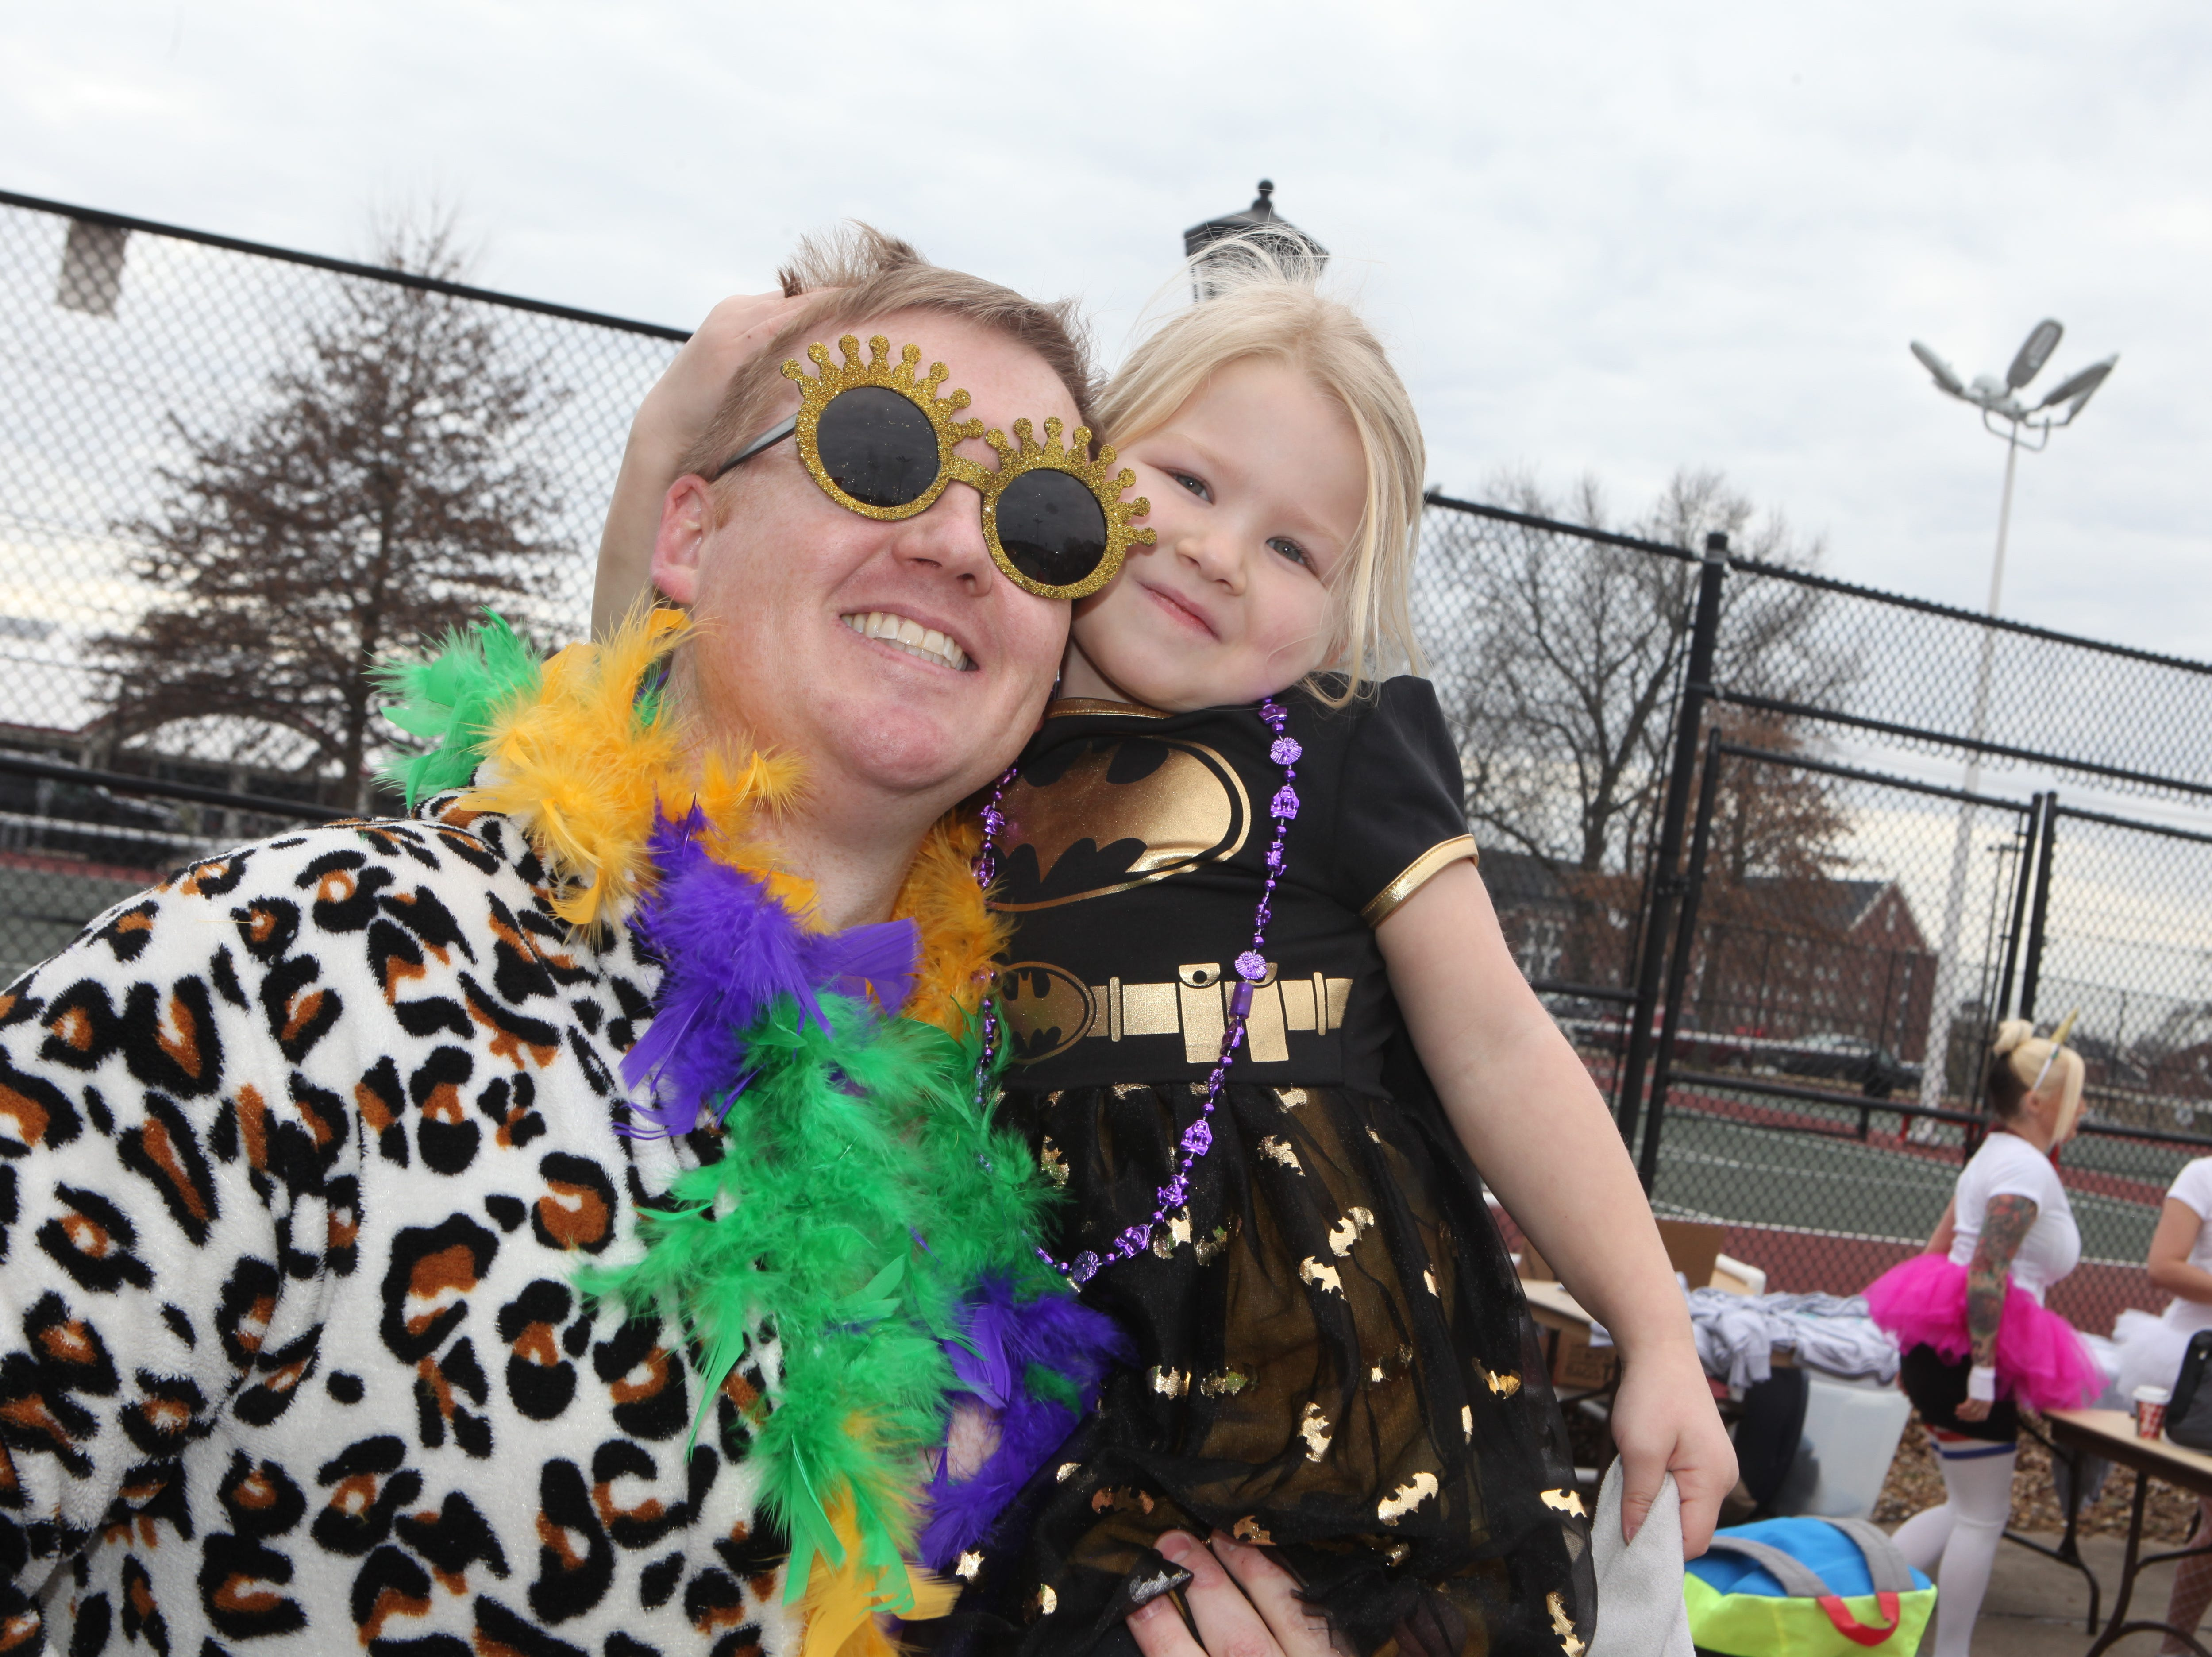 Costume contest winner Brad Forbis as King Baby and Ruby Kate Forbis as Bat Girl smile during the Special Olympics Polar Plunge at APSU on Saturday, Feb. 1, 2019. More than $10,000 was raised at this year's event.